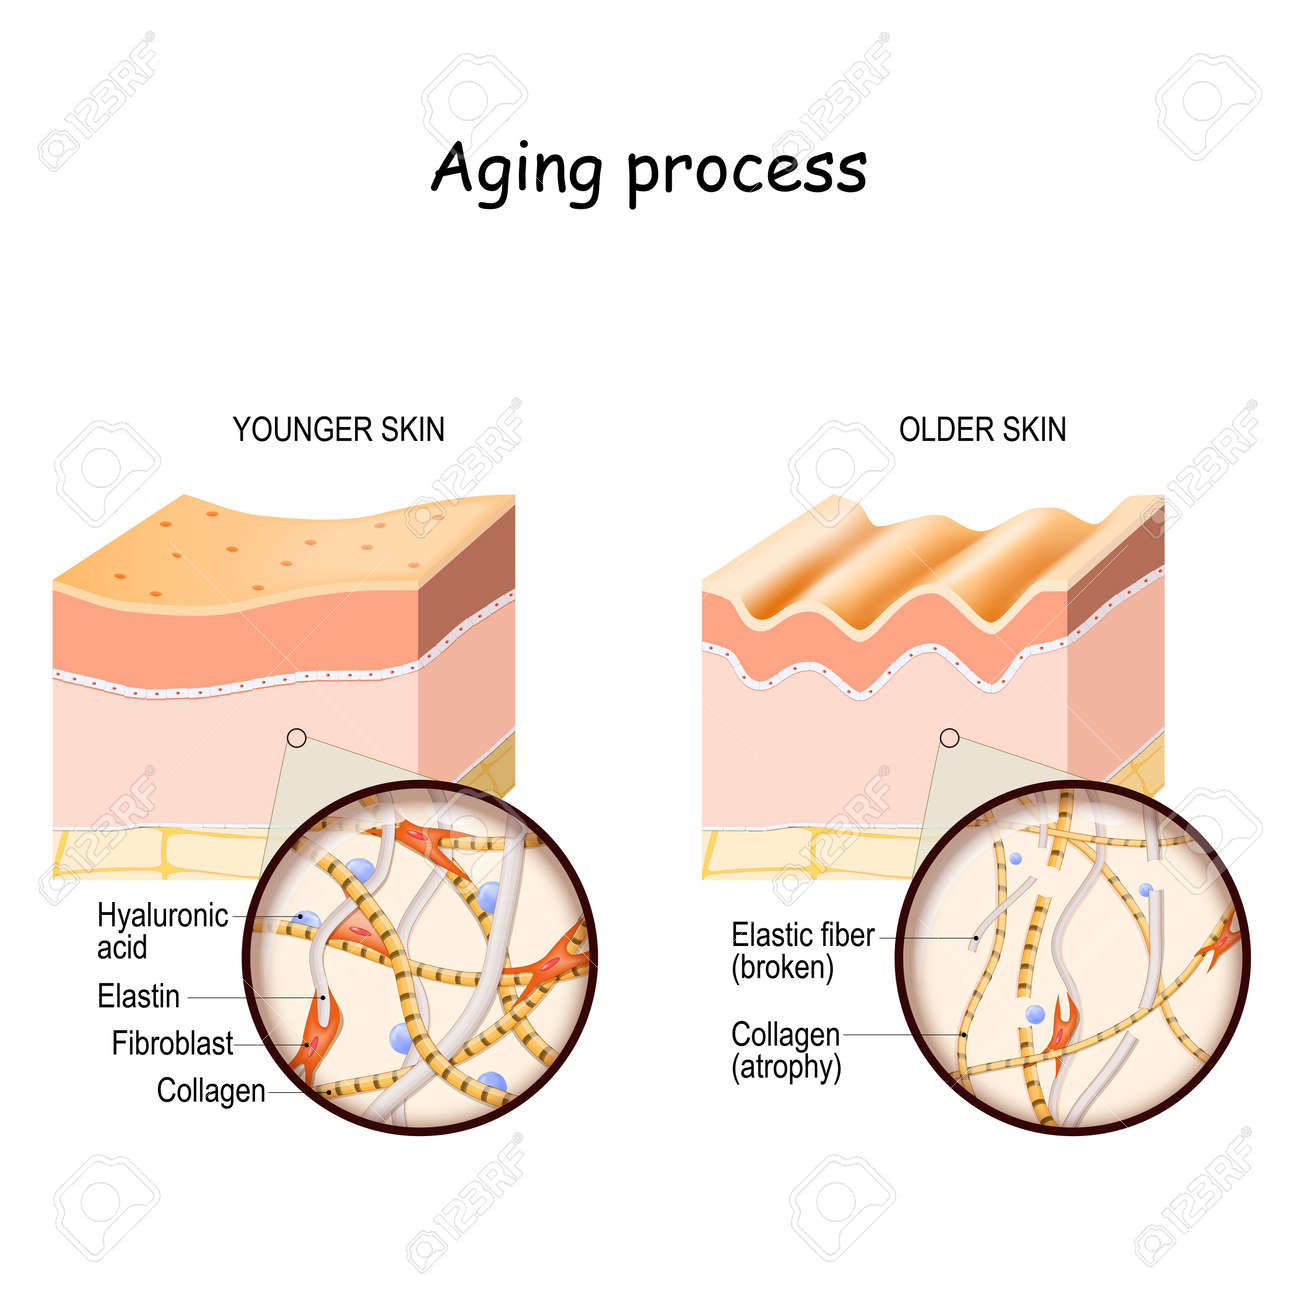 Aging process. comparison and difference between younger and older skin. Layers of the skin and close up of elastin, collagen fibers, hyaluronic acid, and fibroblast. - 172744484